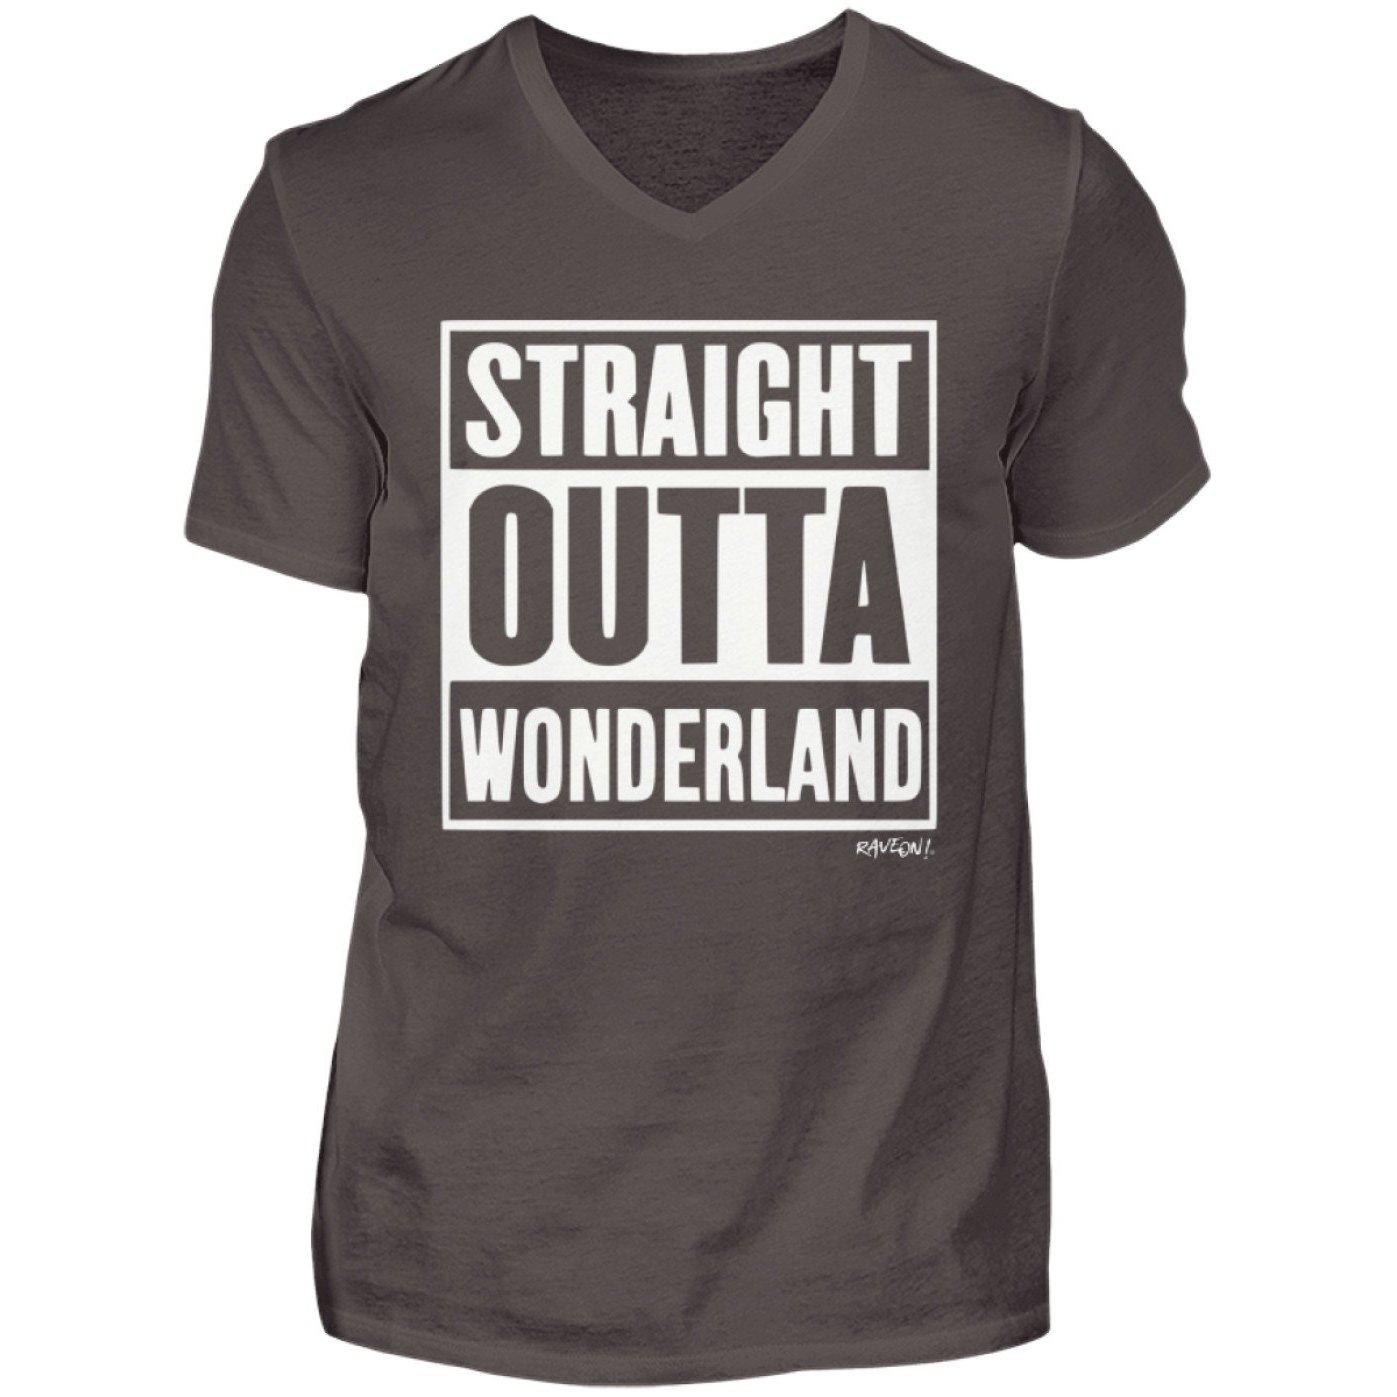 STRAIGHT OUTTA WONDERLAND - Rave On!® - Herren V-Neck Shirt-V-Neck Herrenshirt-Smoke (Solid)-S-Rave-On! I www.rave-on.shop I Deine Rave & Techno Szene Shop I compton, Design - STRAIGHT OUTTA WONDERLAND - Rave On!®, rave, straight, techno, wonderland - Sexy Festival Streetwear , Clubwear & Raver Style